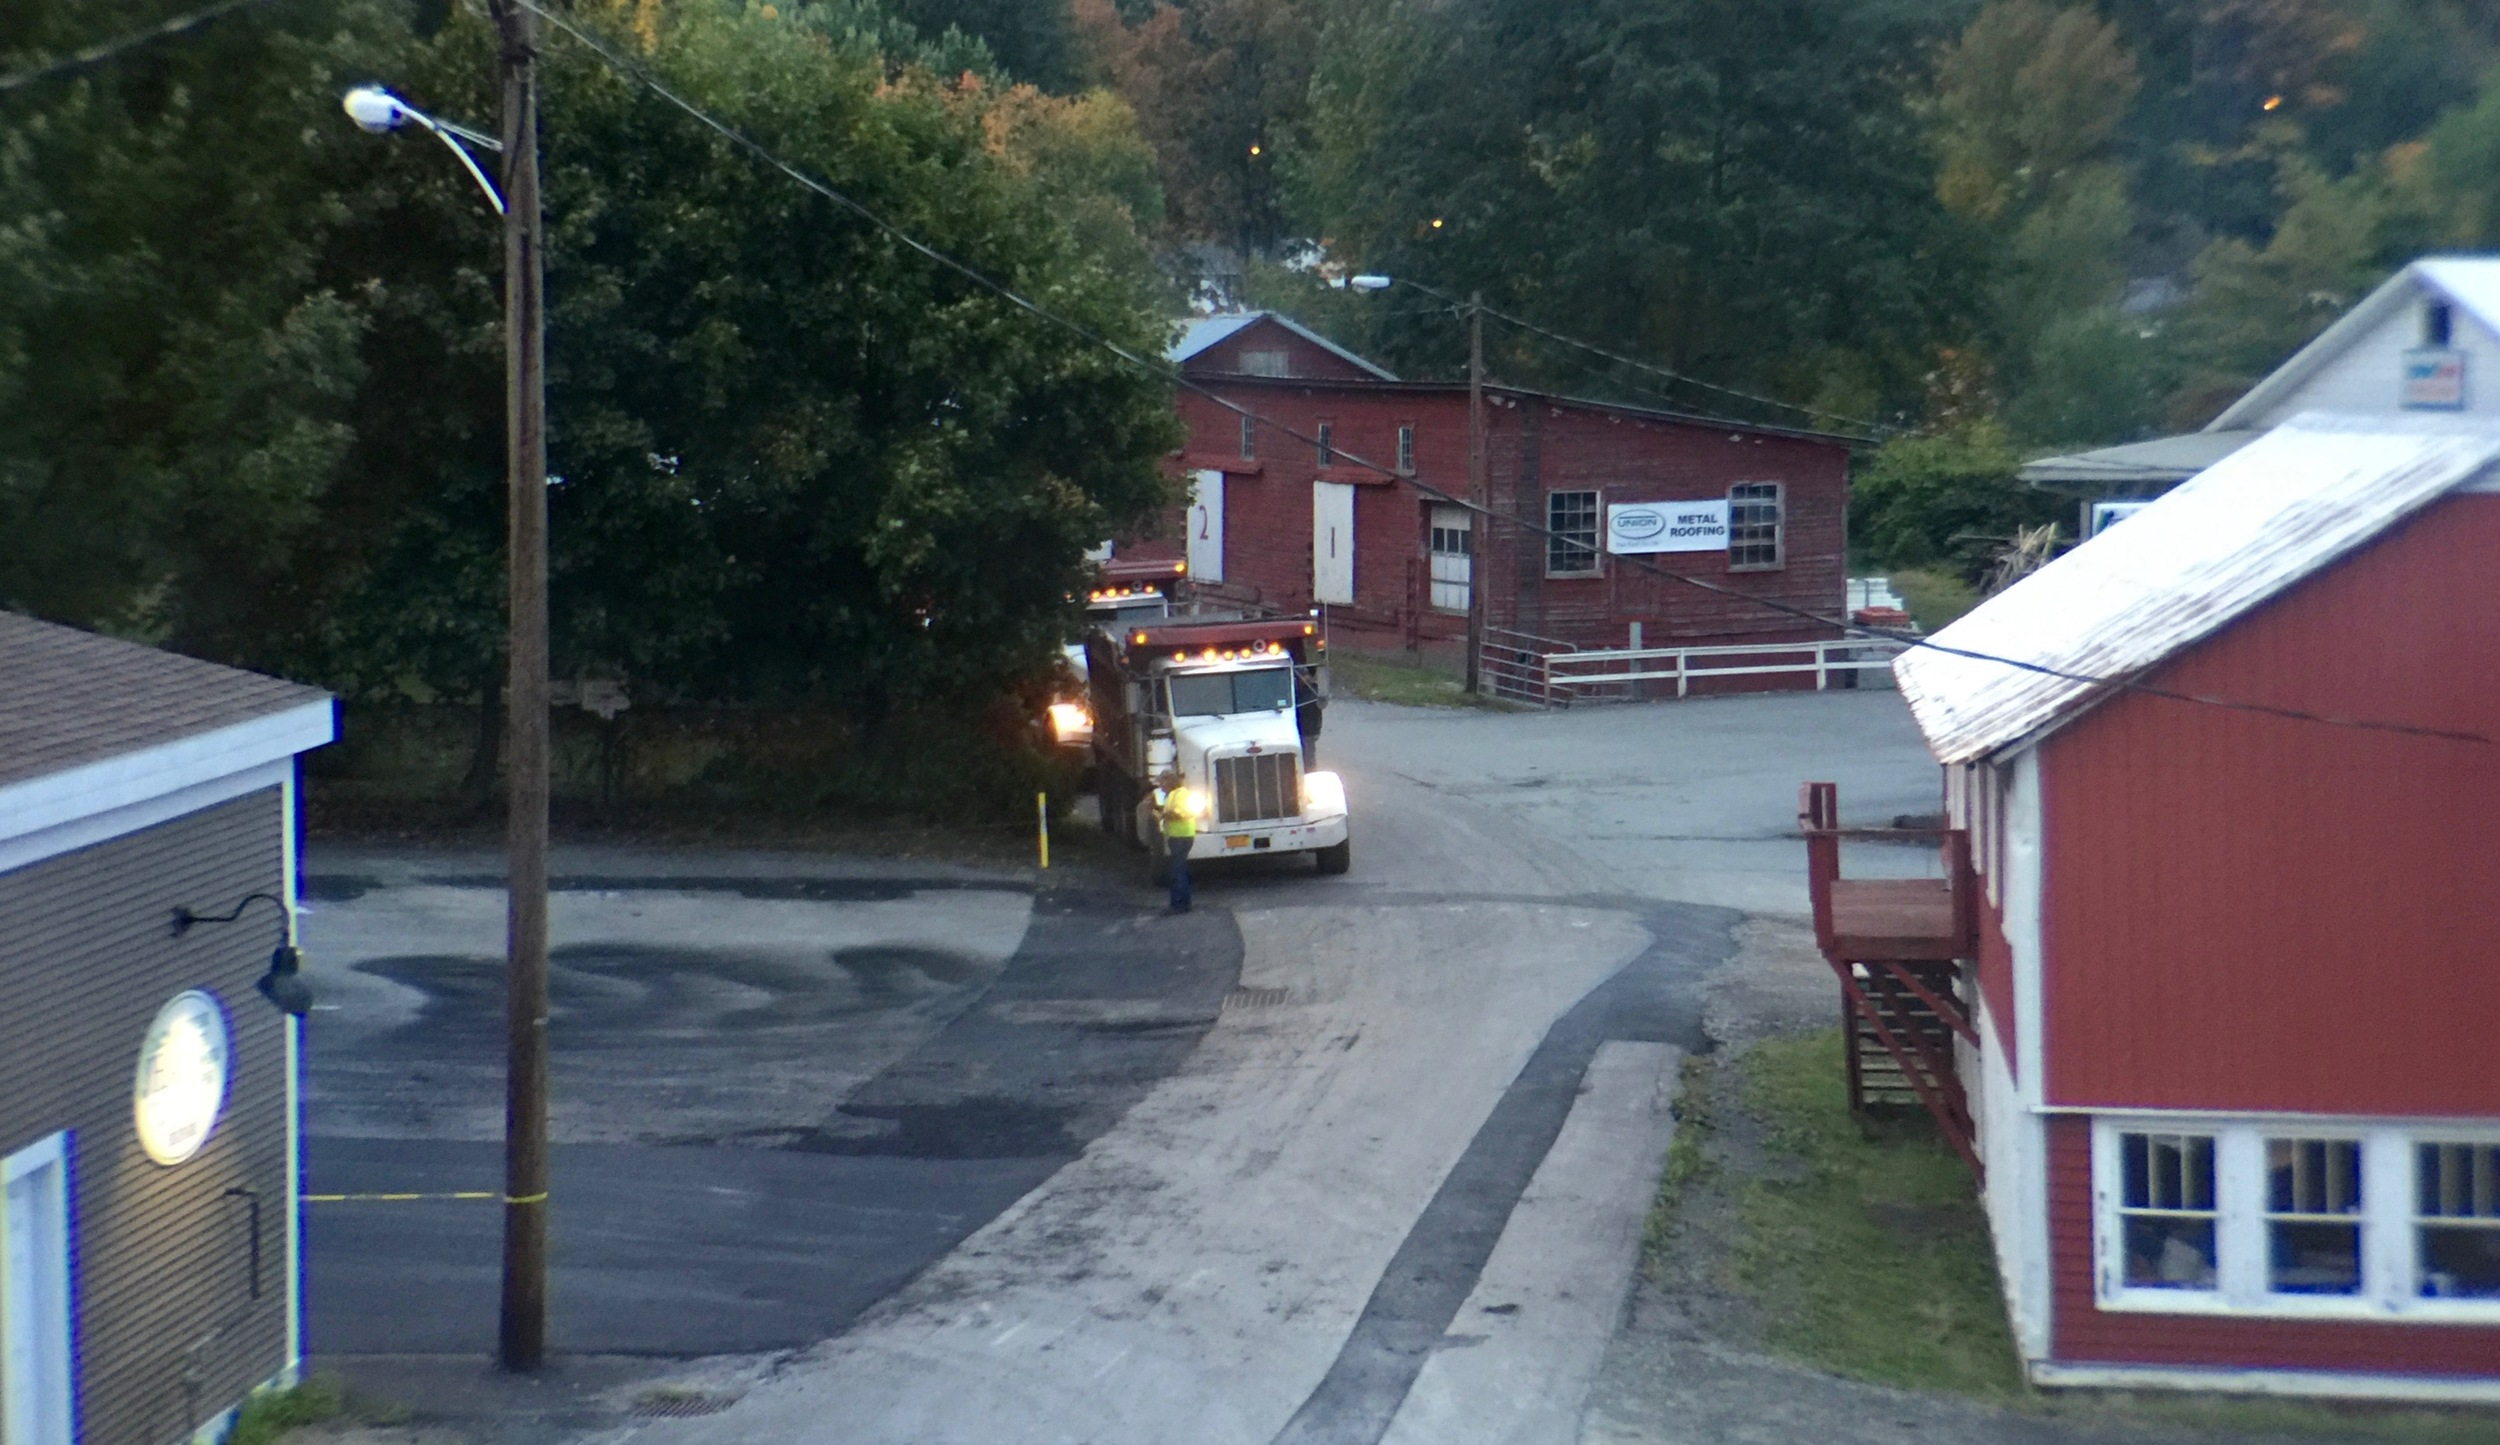 Trucks idling behind my hotel room in Montrose at 6:30 am.